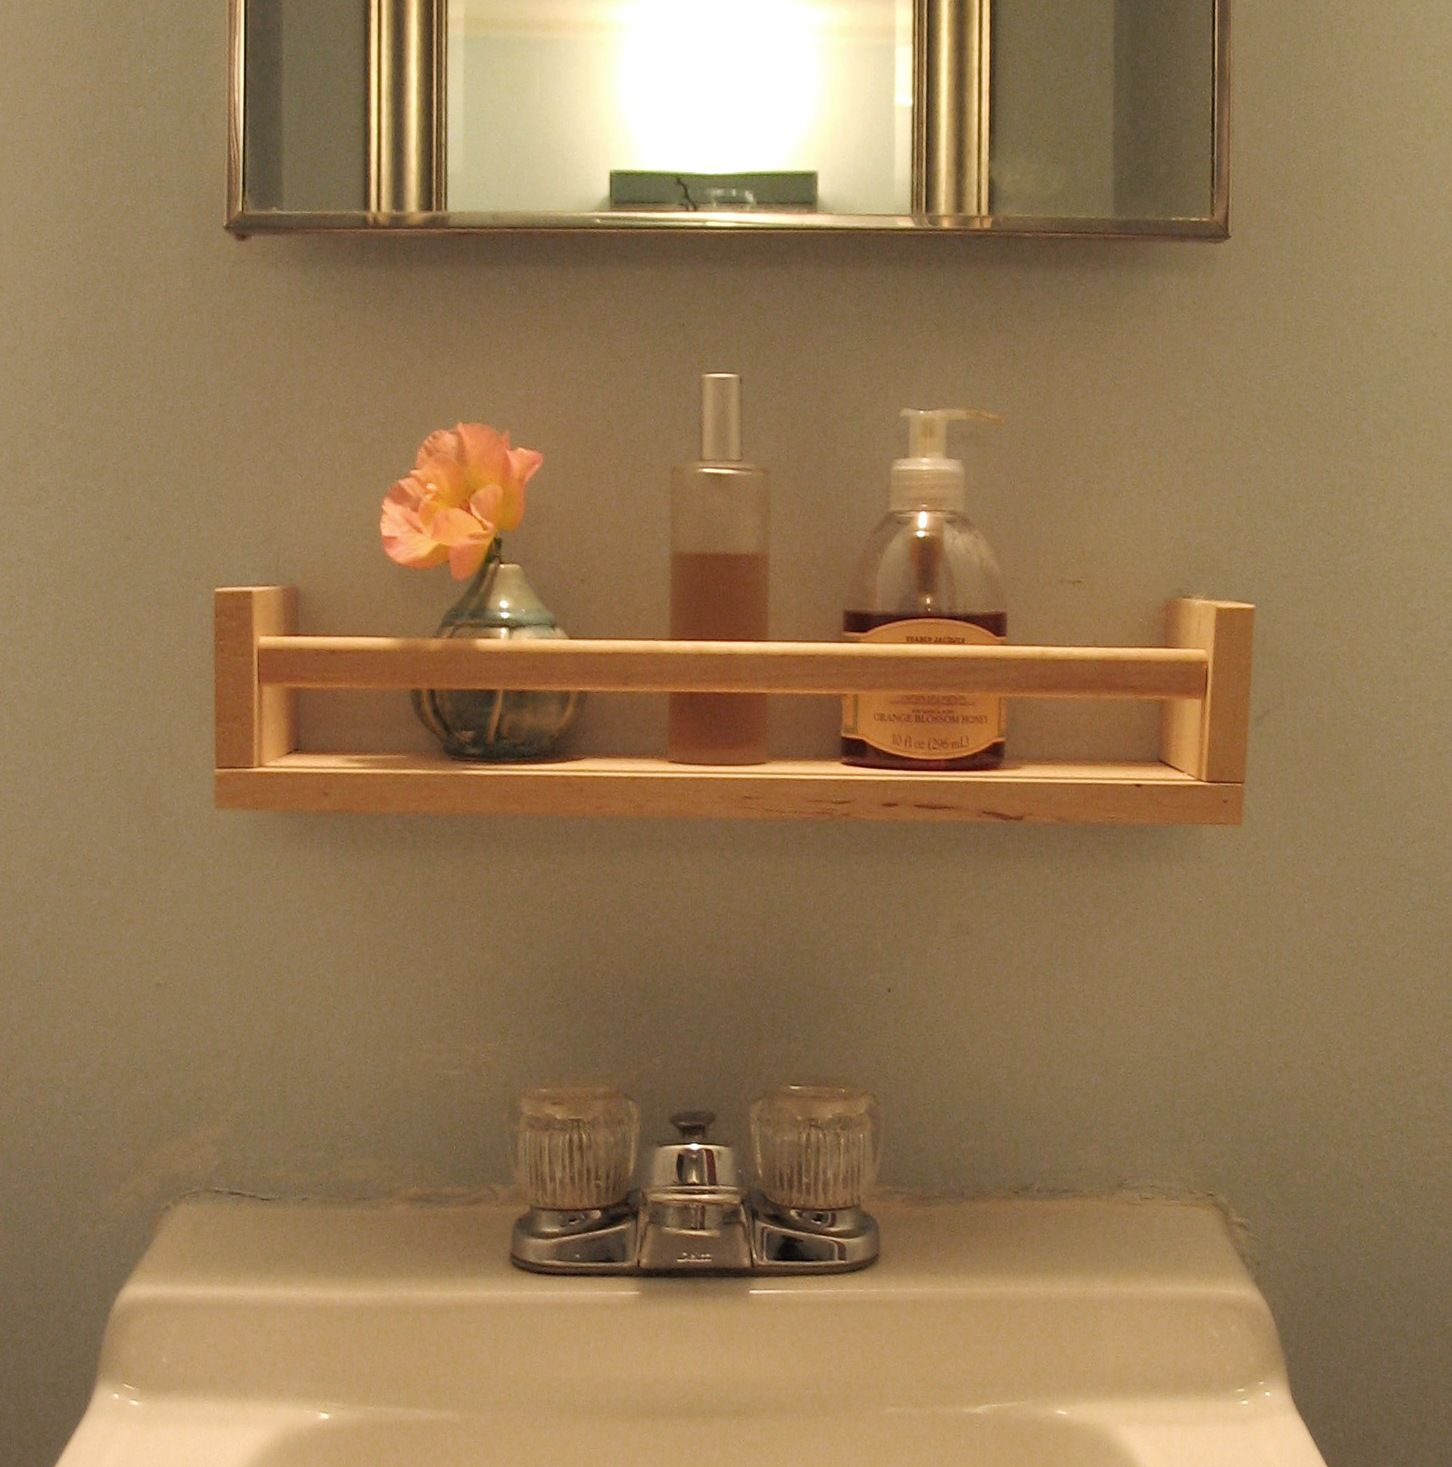 17 Diy Wooden Bathroom Shelves That You Can Make Just In One Day Bathroom Shelf Decor Diy Wooden Shelves Wooden Bathroom Shelves